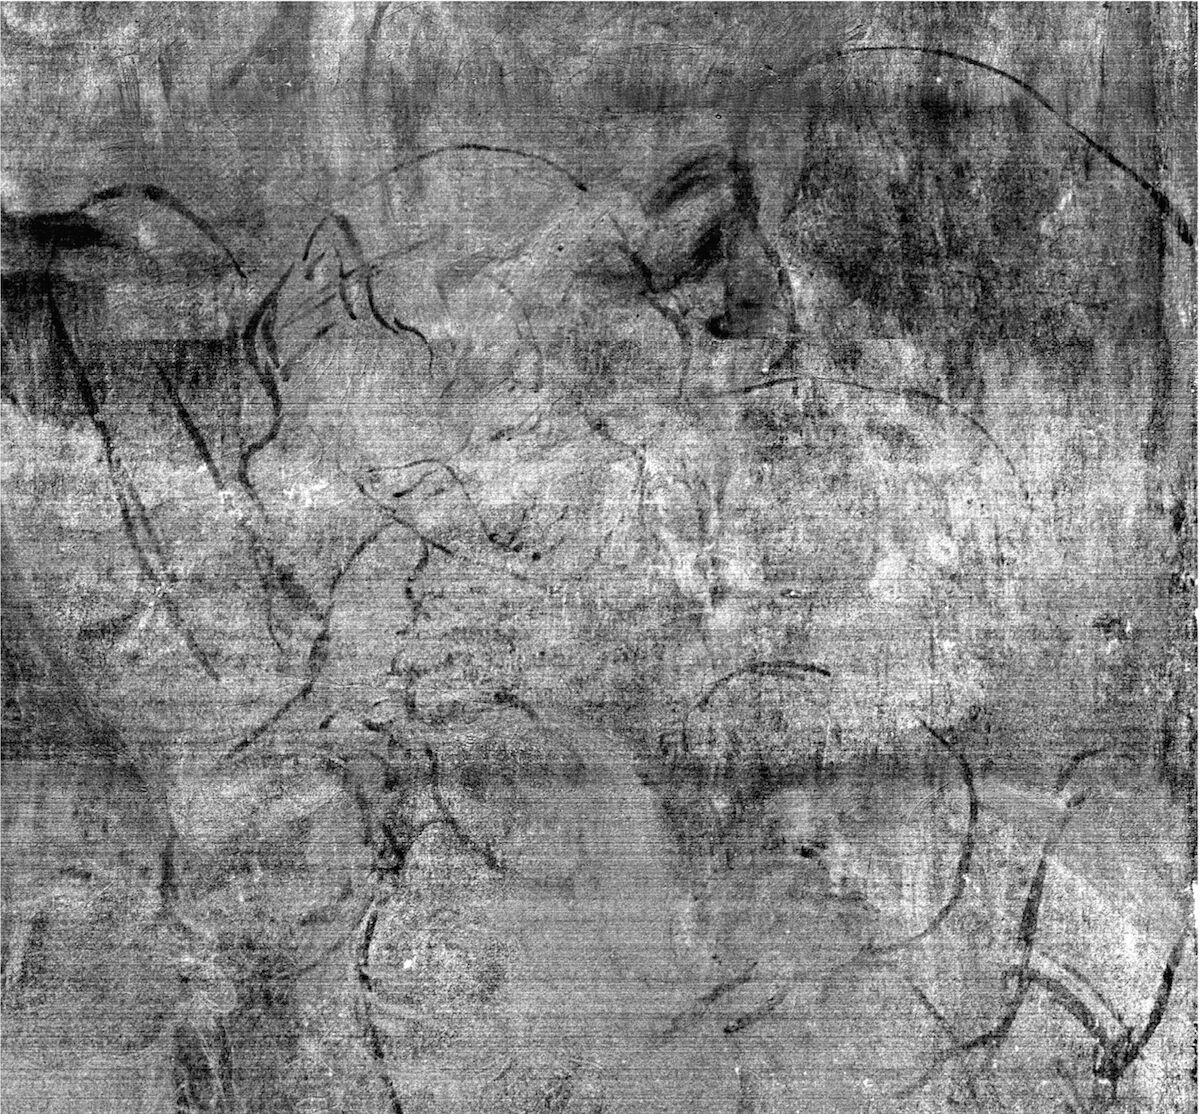 Detail from hyperspectral imaging data, revealing the drawing for the angel and baby of the first composition (under the landscape at the right side of the painting). © The National Gallery, London.